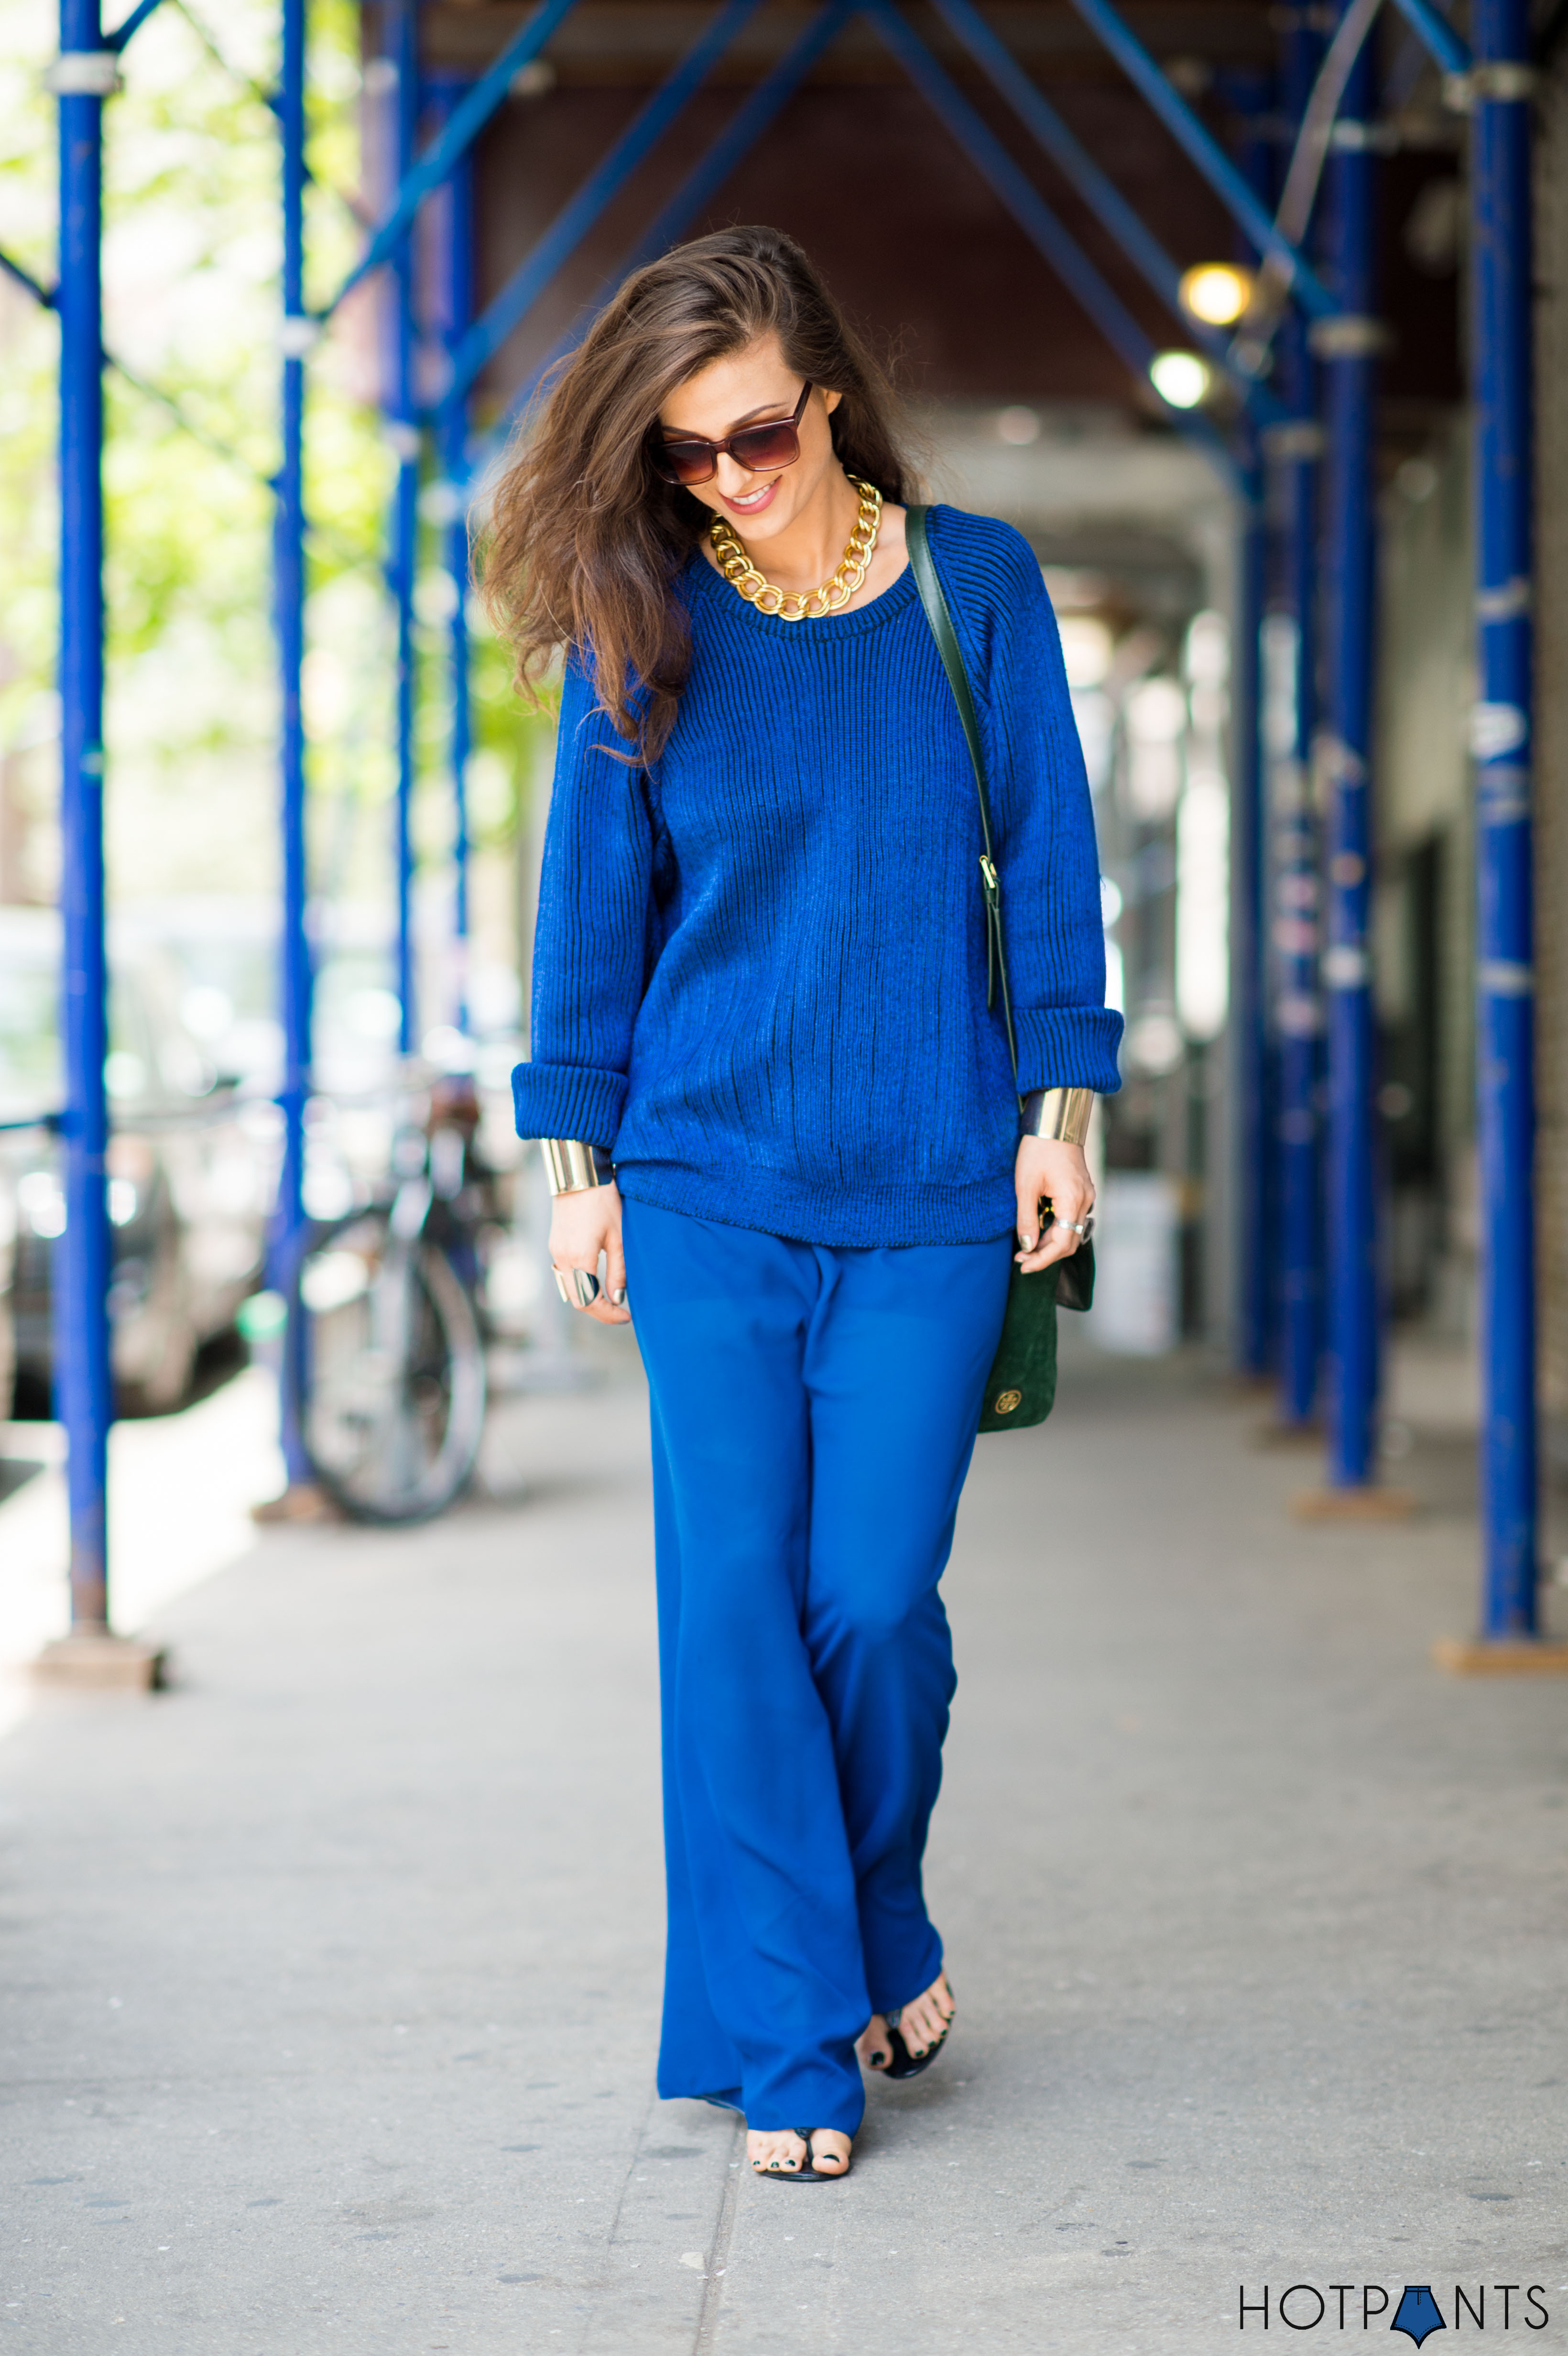 Gold Cuffs Vintage Blue Sweater Maxi Pants